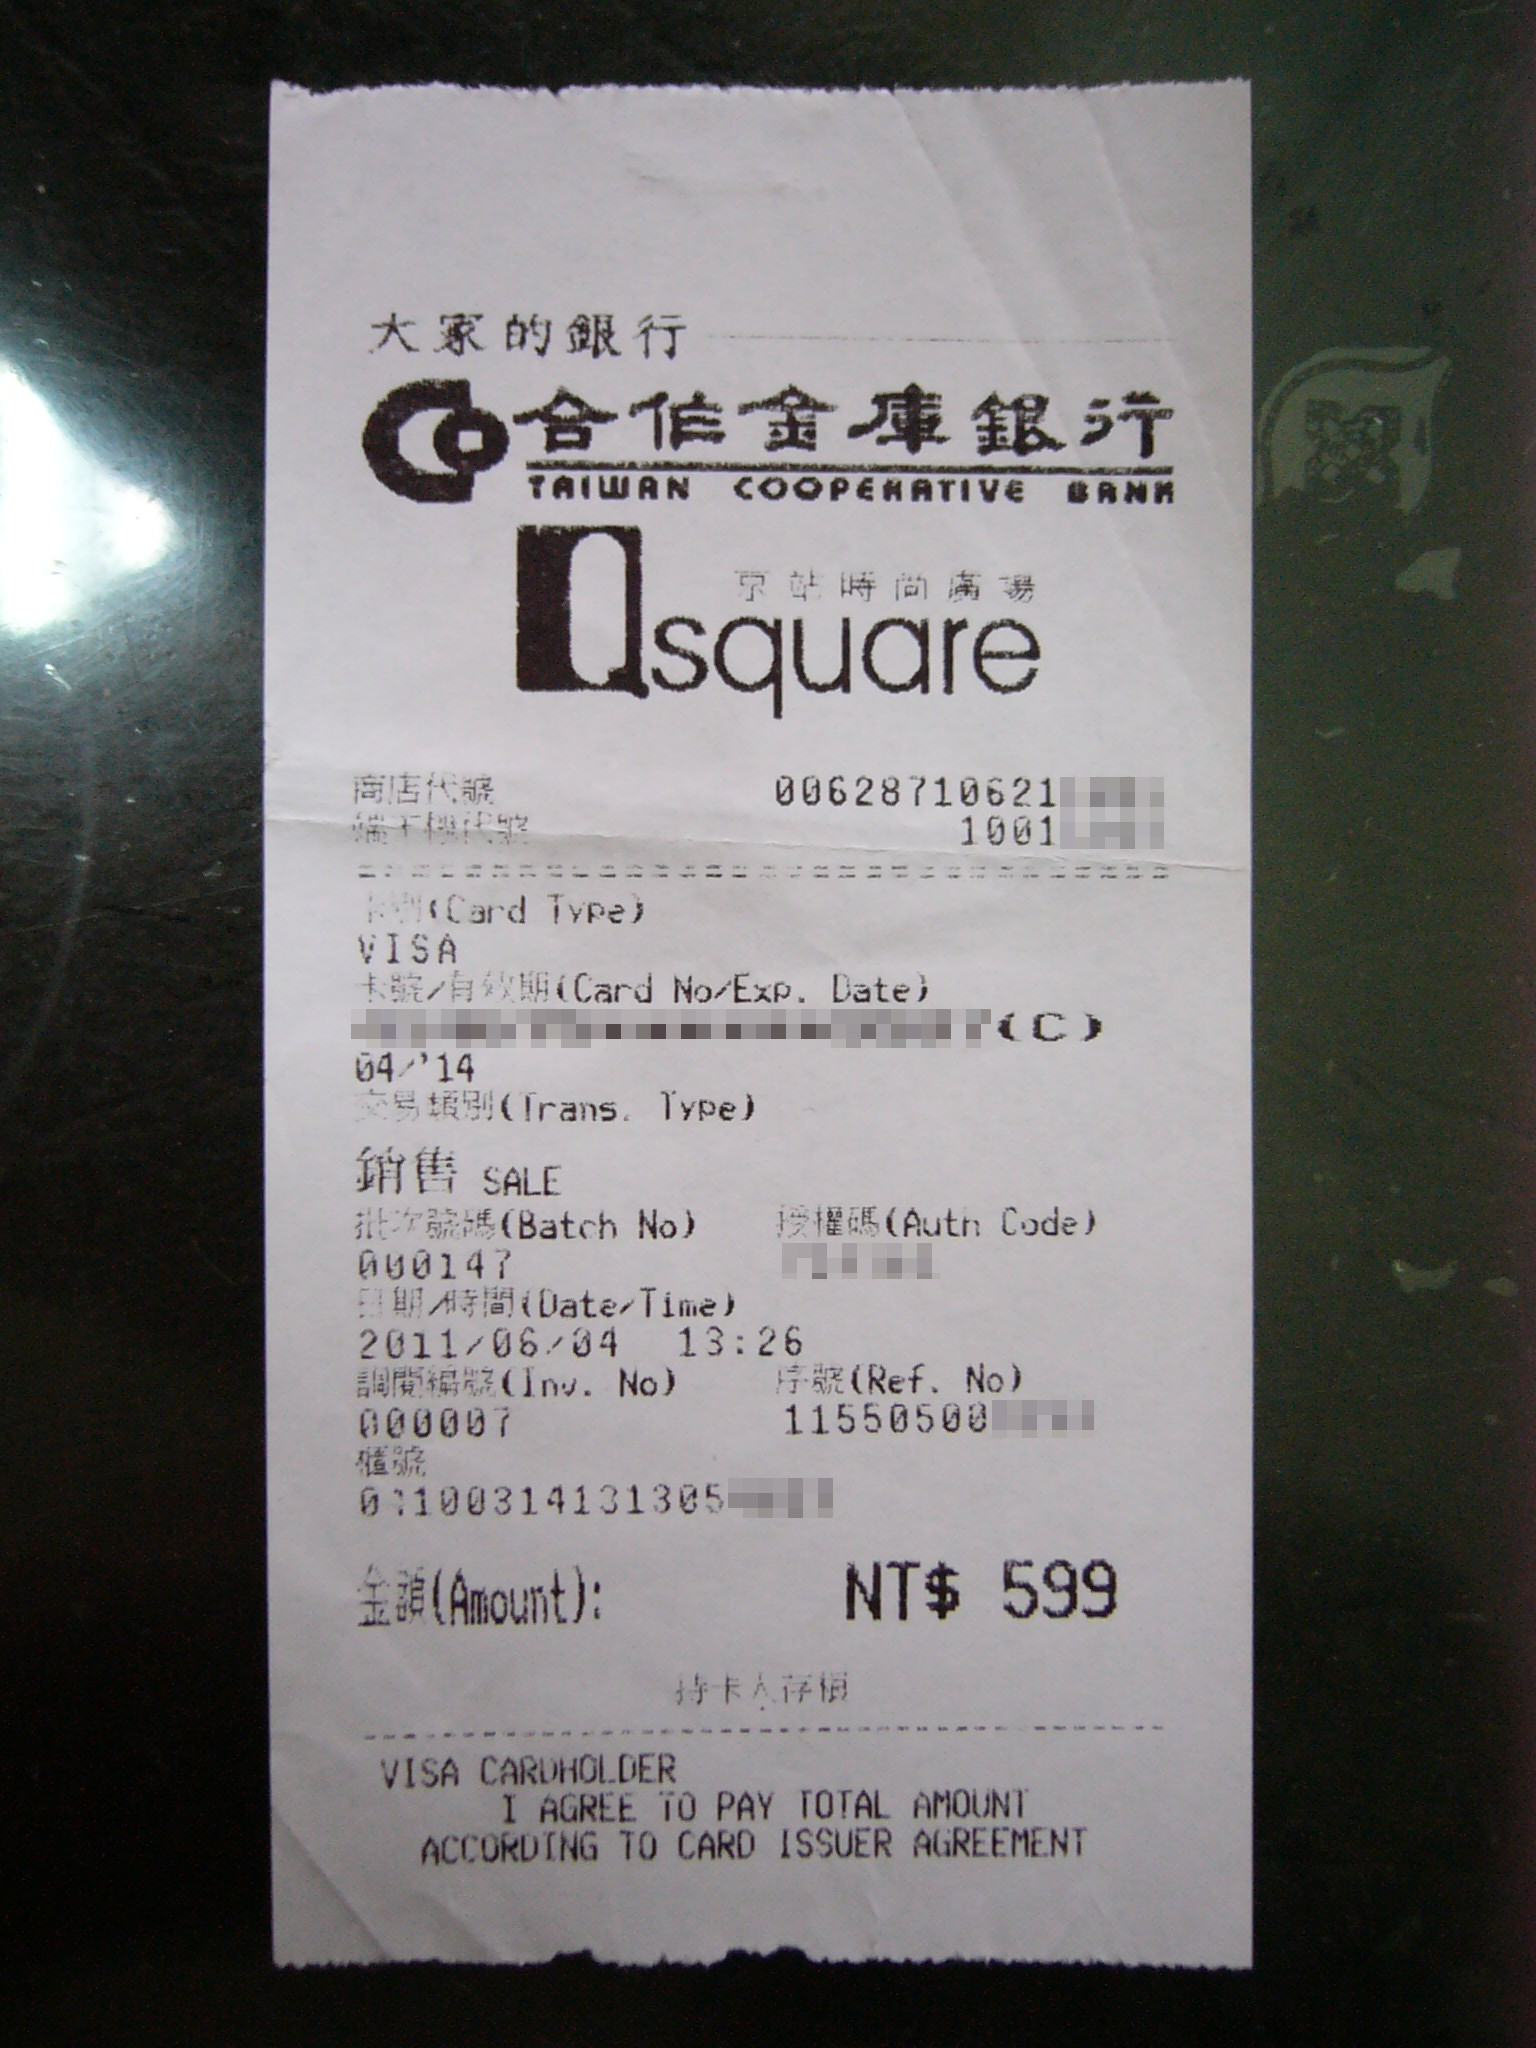 File Qsquare Credit Card Receipt By Taiwan Cooperative